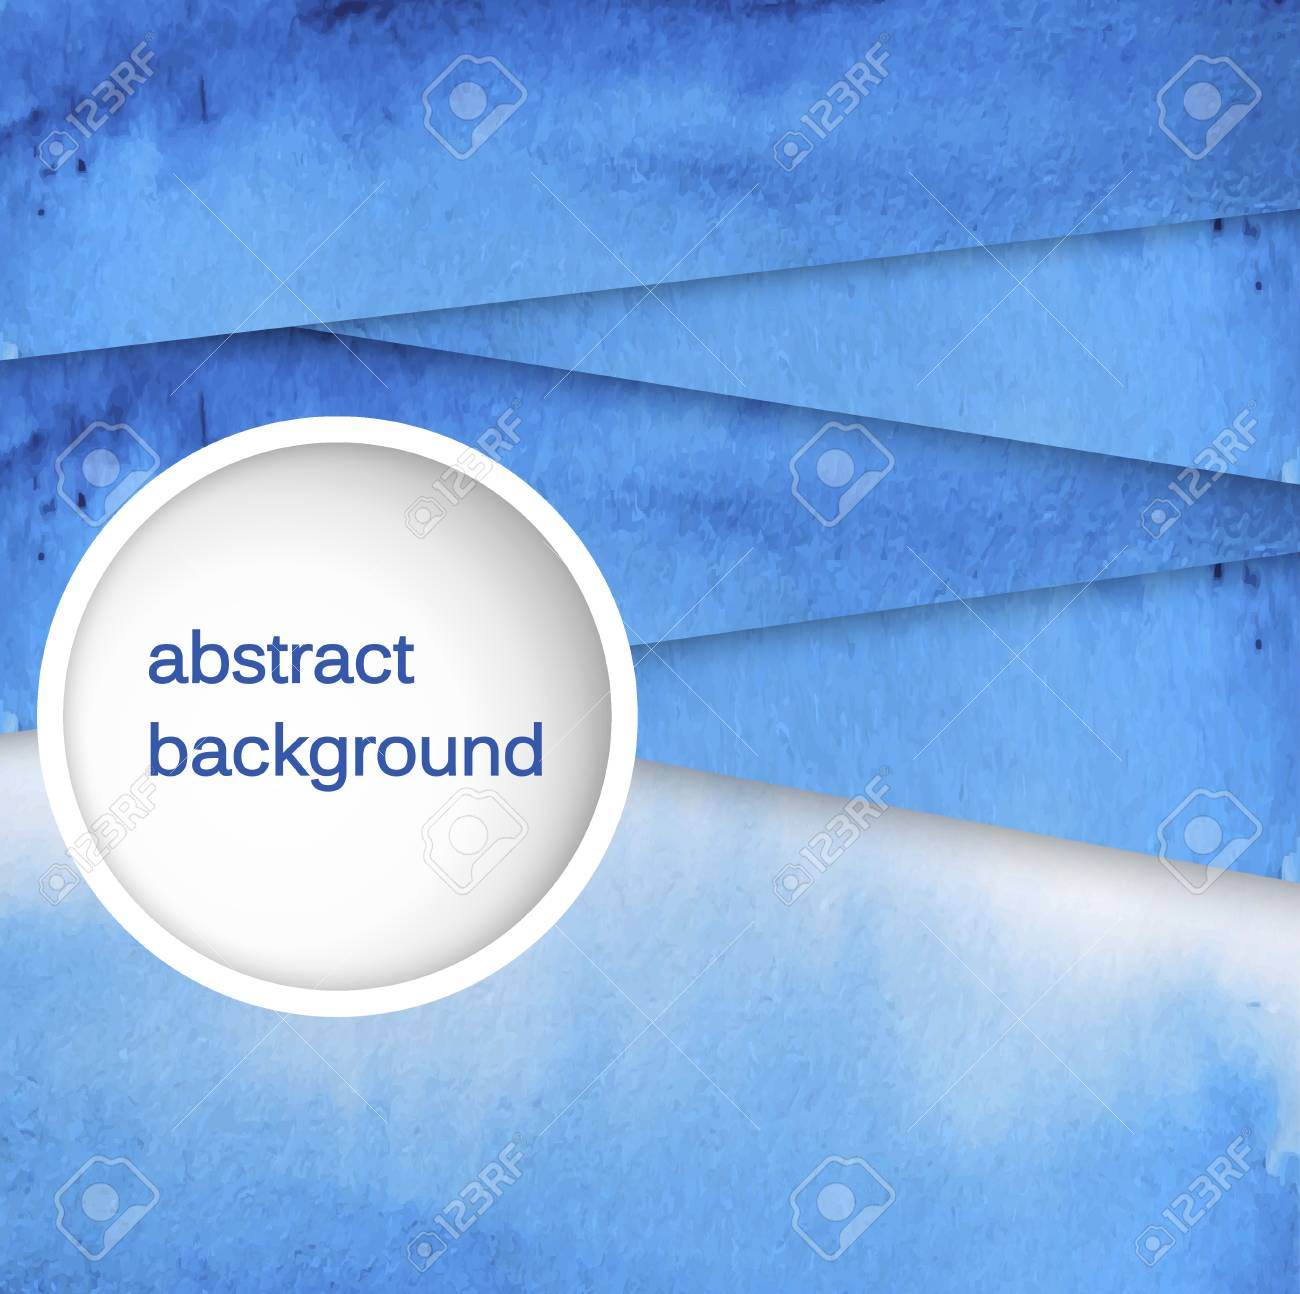 Vector abstract hand drawn watercolor background. Blue watercolor banner template. Painting. Watercolor splash. Vector illustration with empty space for your text. - 41501728